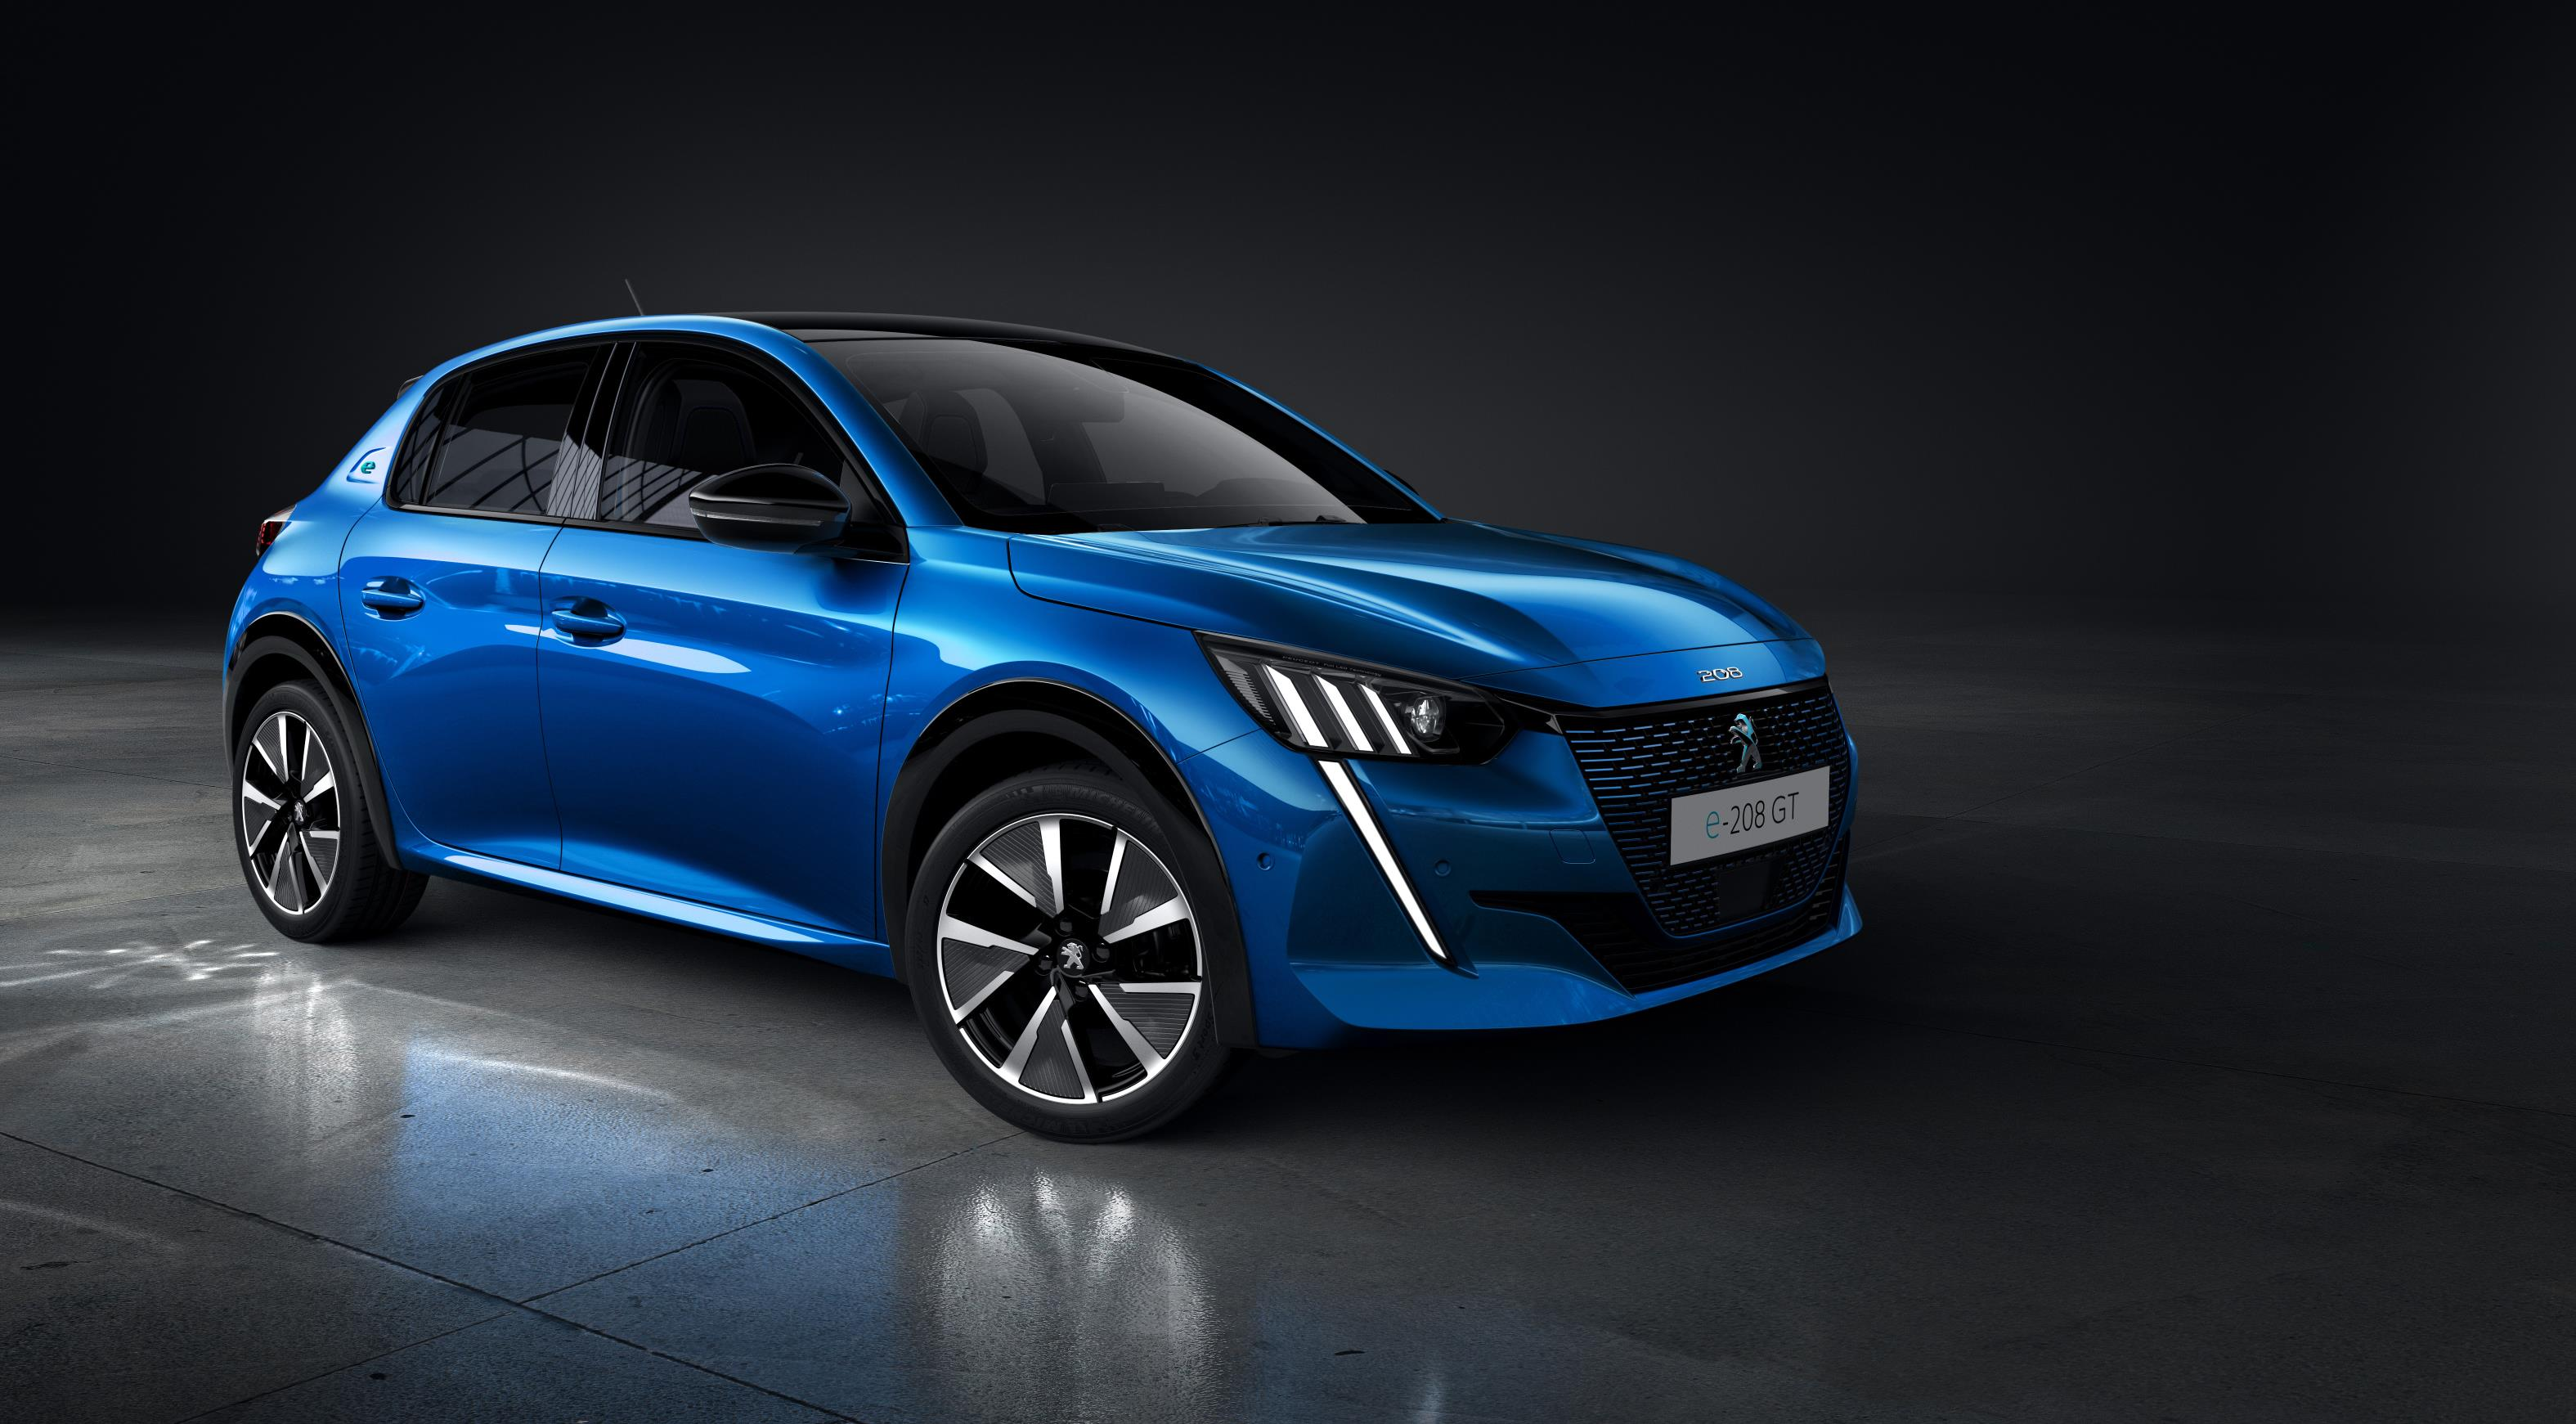 The Peugeot e-208 aims to provide everything a regular hatchback can